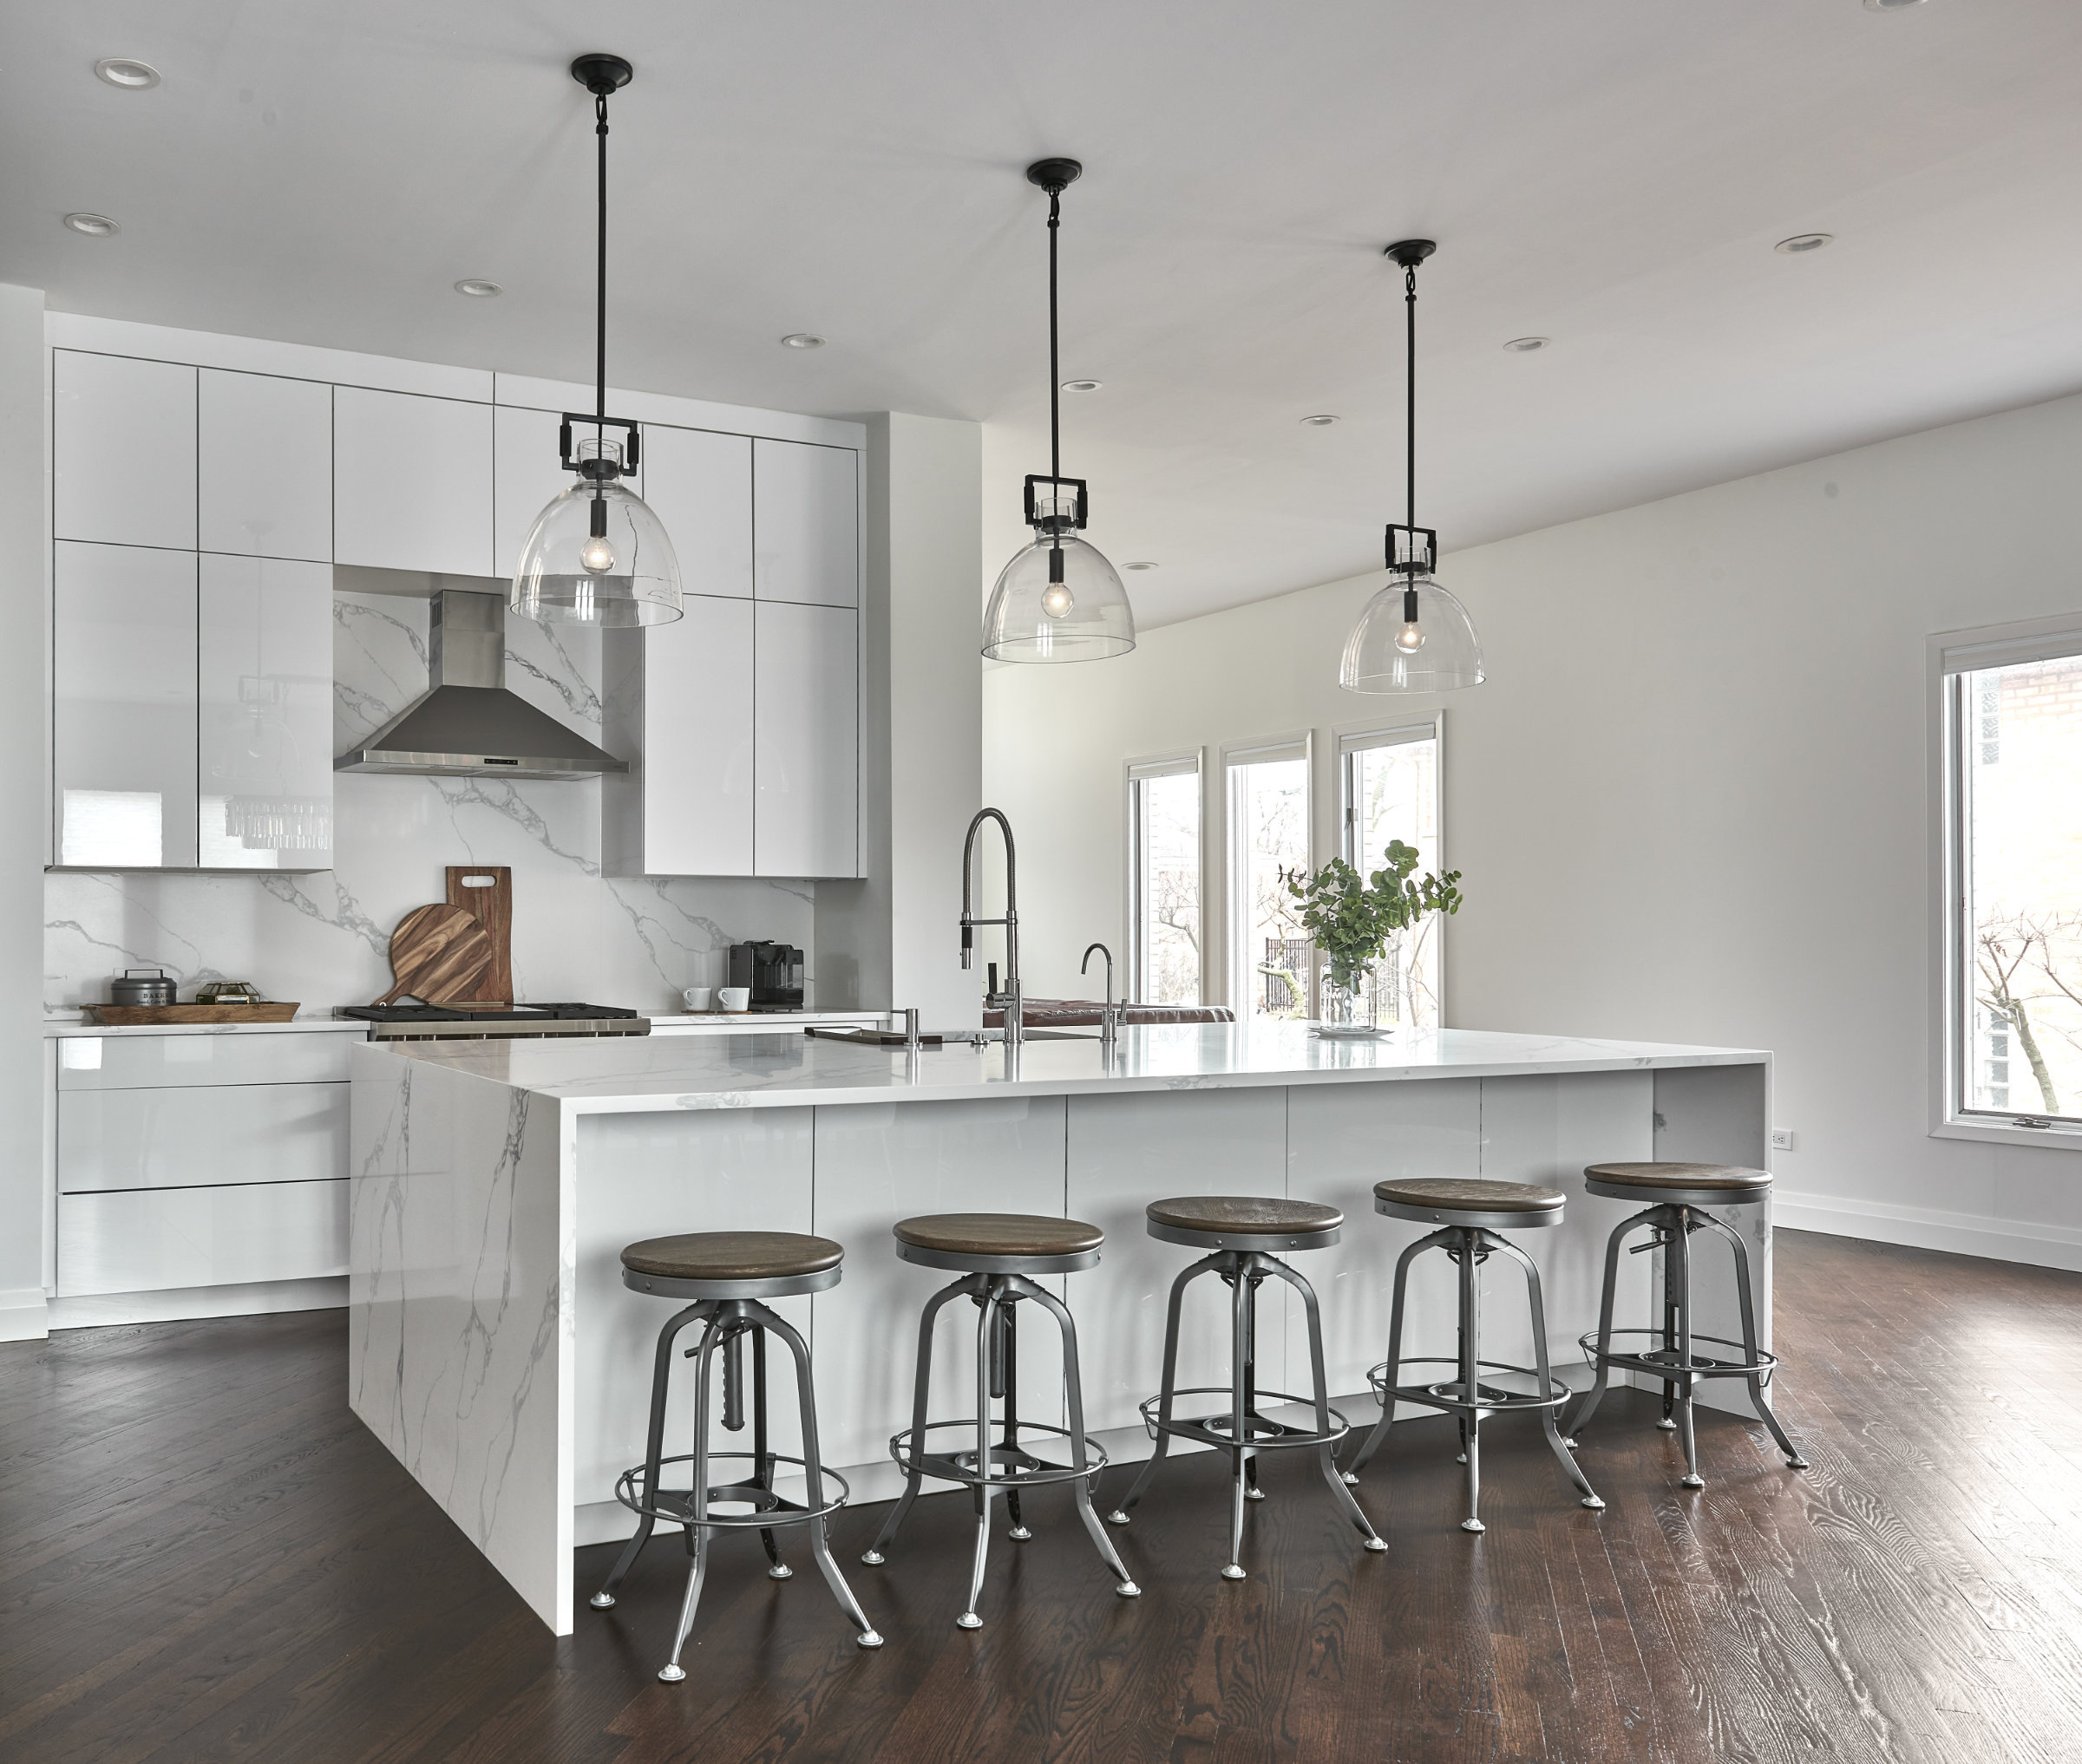 lincolnwood kitchen contractor